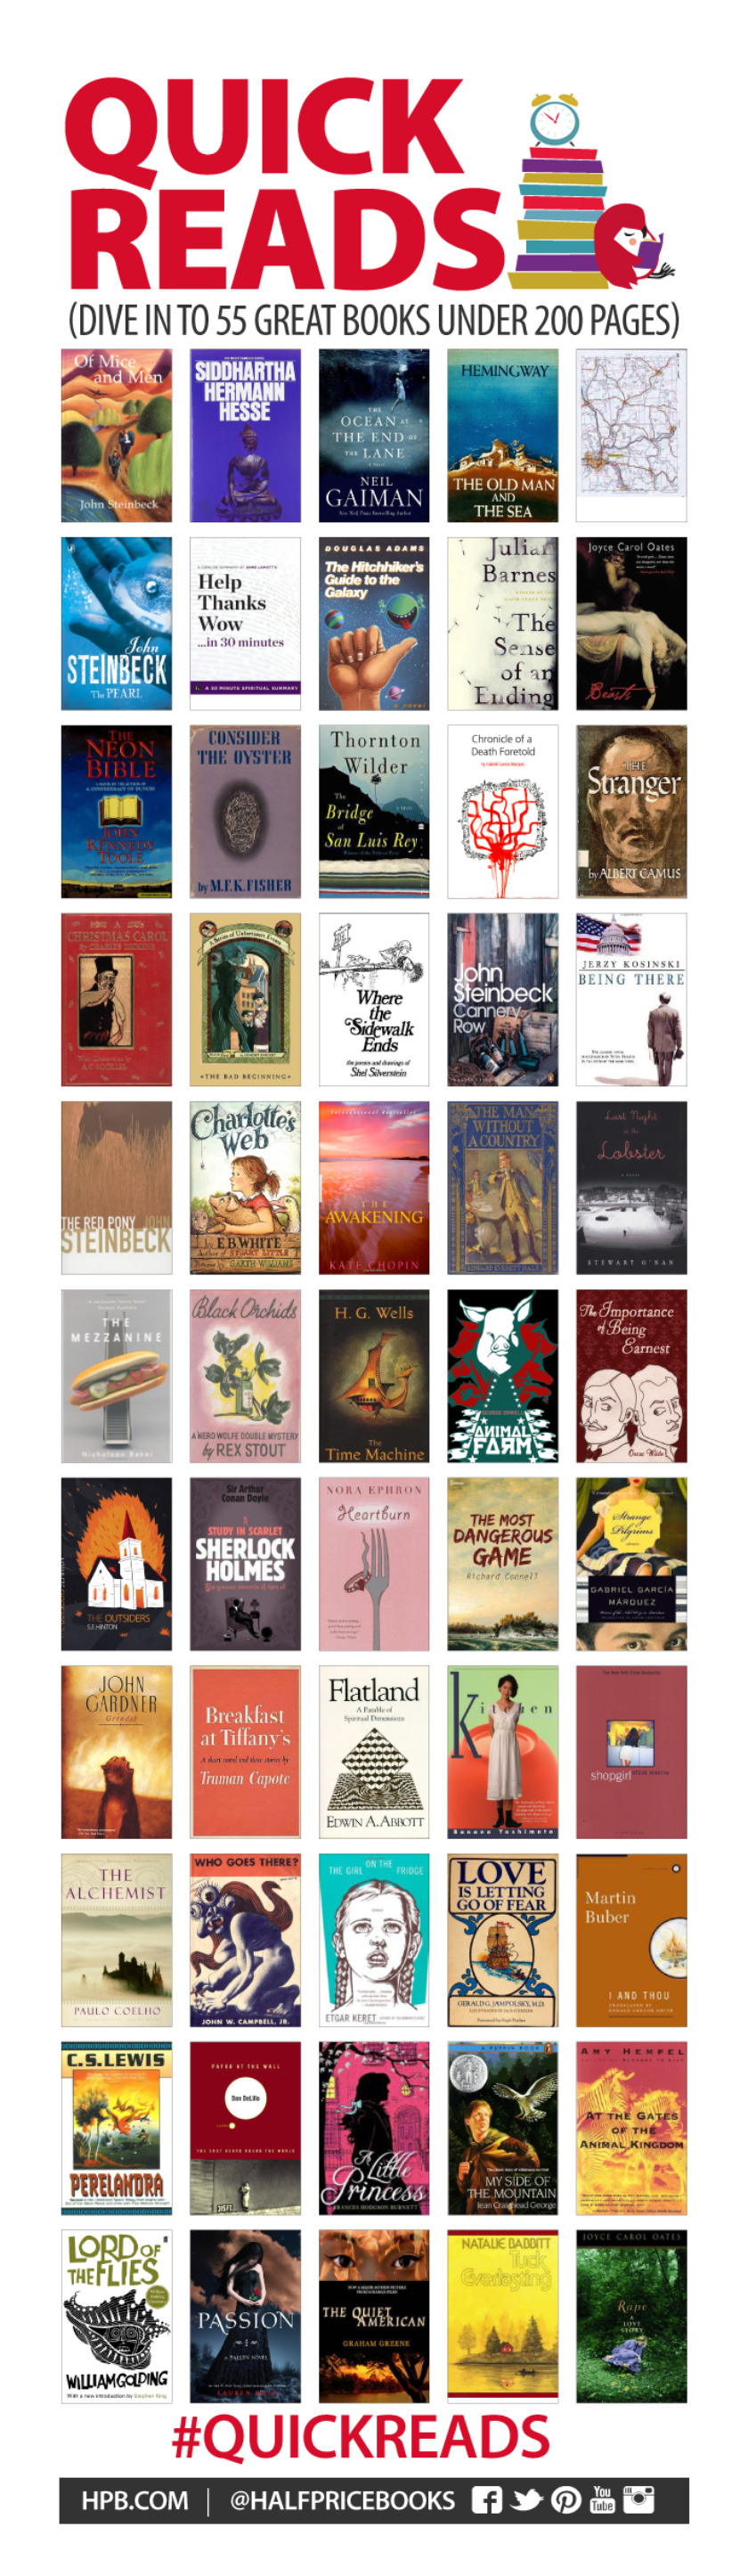 55 great books under 200 pages #infographic